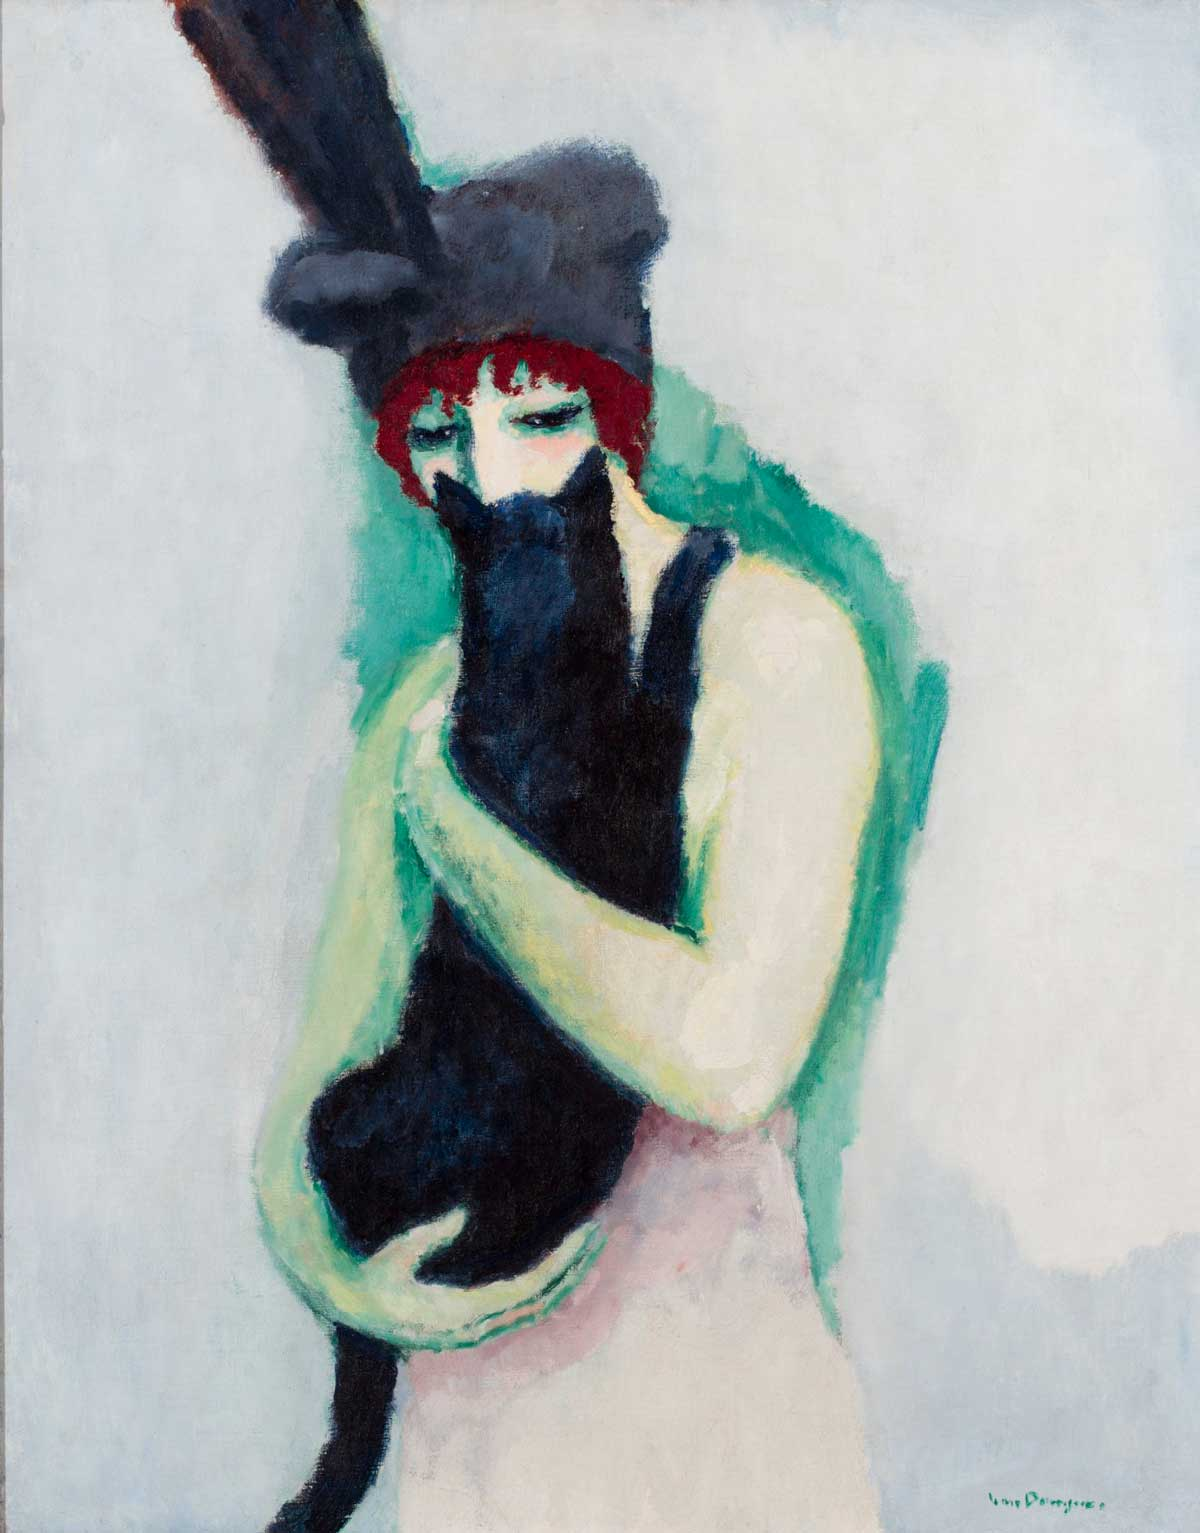 Woman in red hair and a large black hat holding a black cat